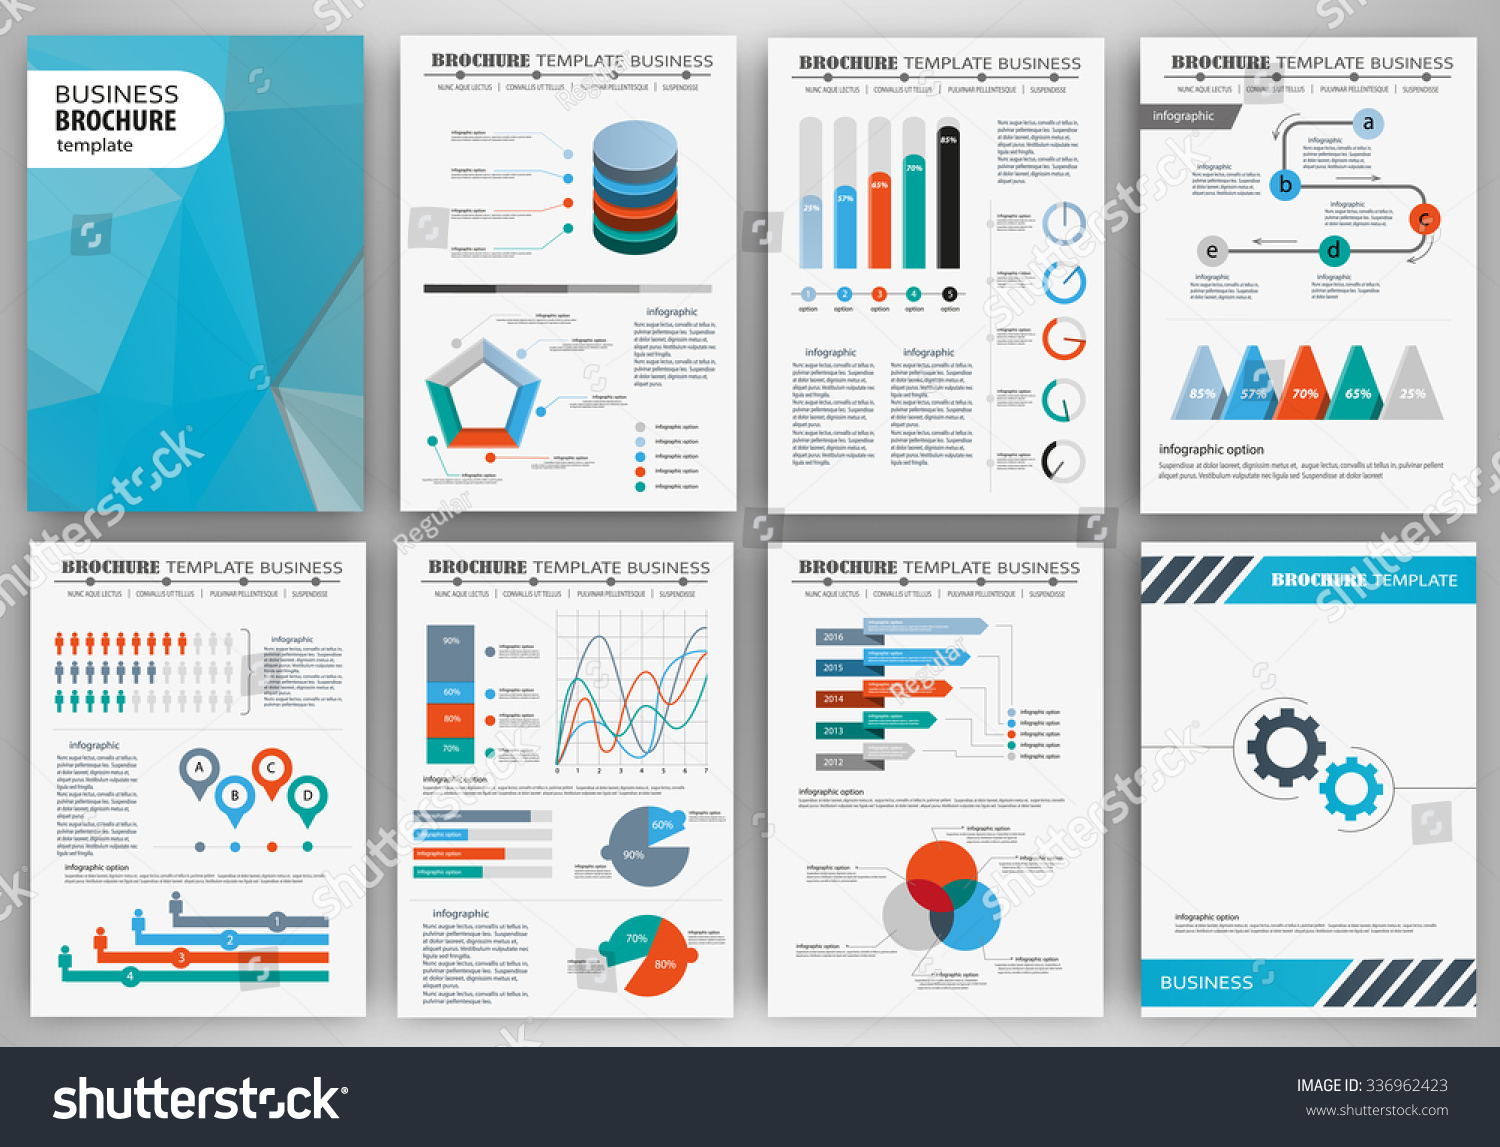 Infographic Brochure Elements Business Finance Visualization Stock ...